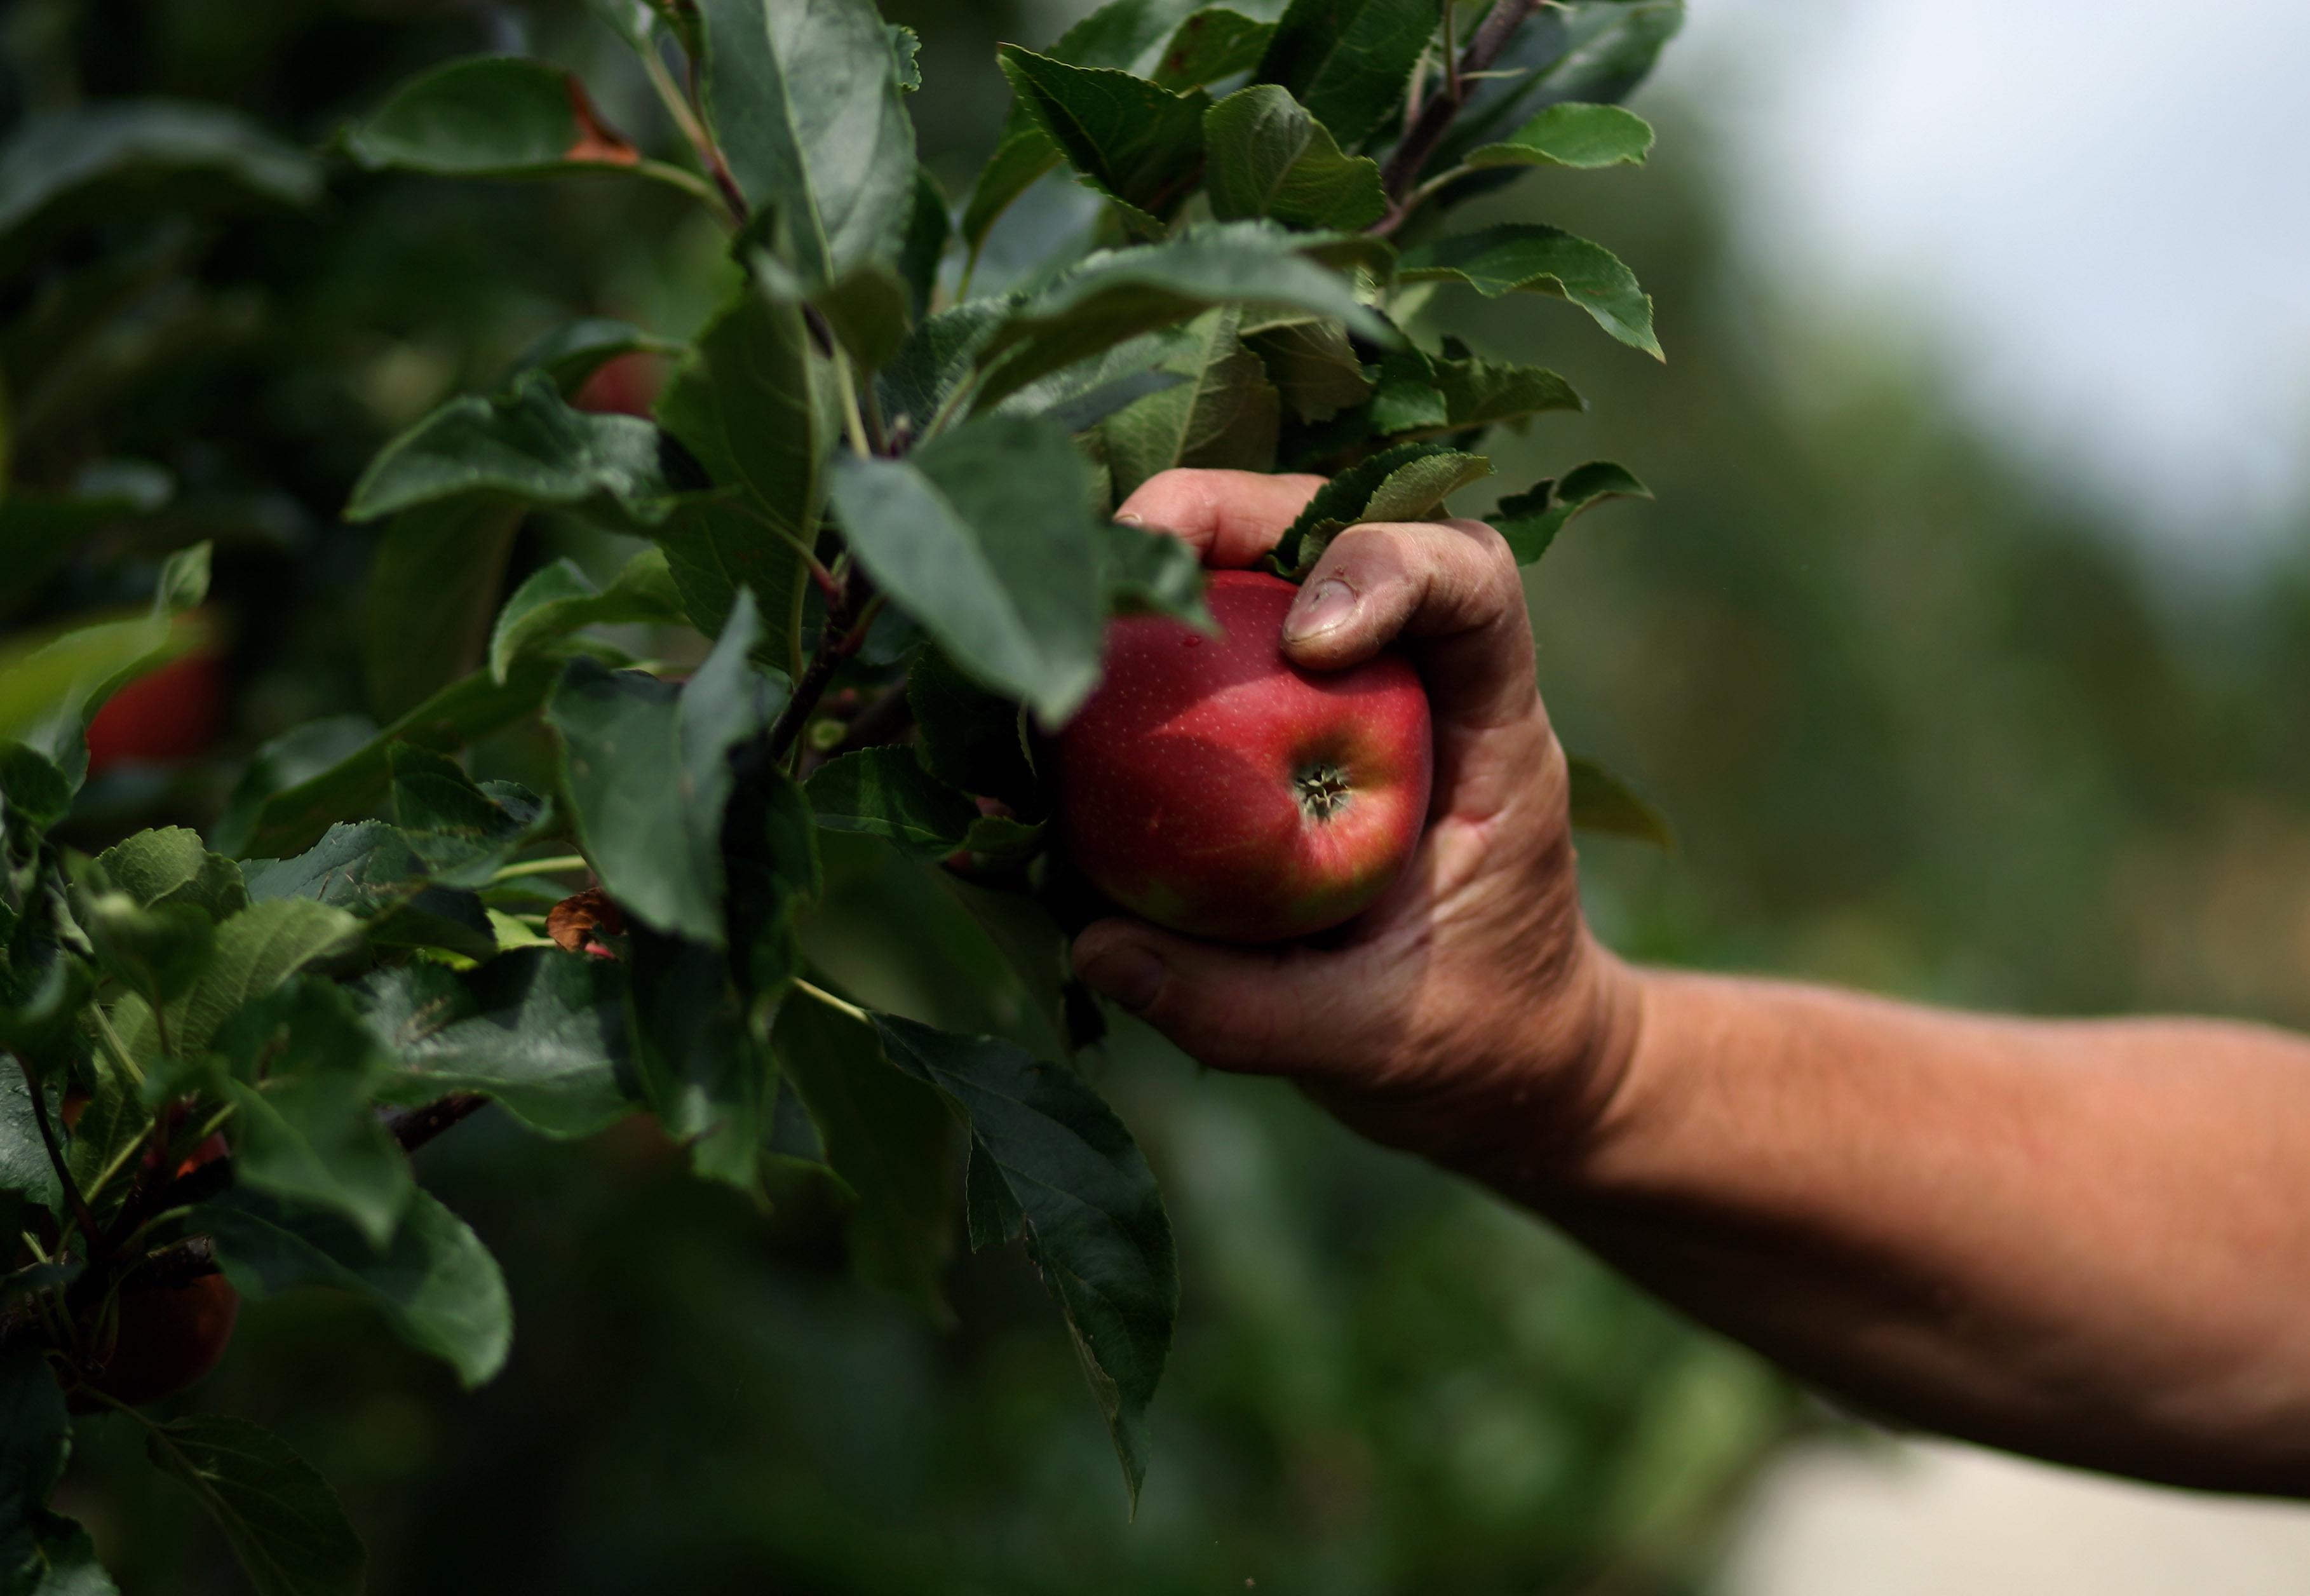 A harvester picks apples by hand.